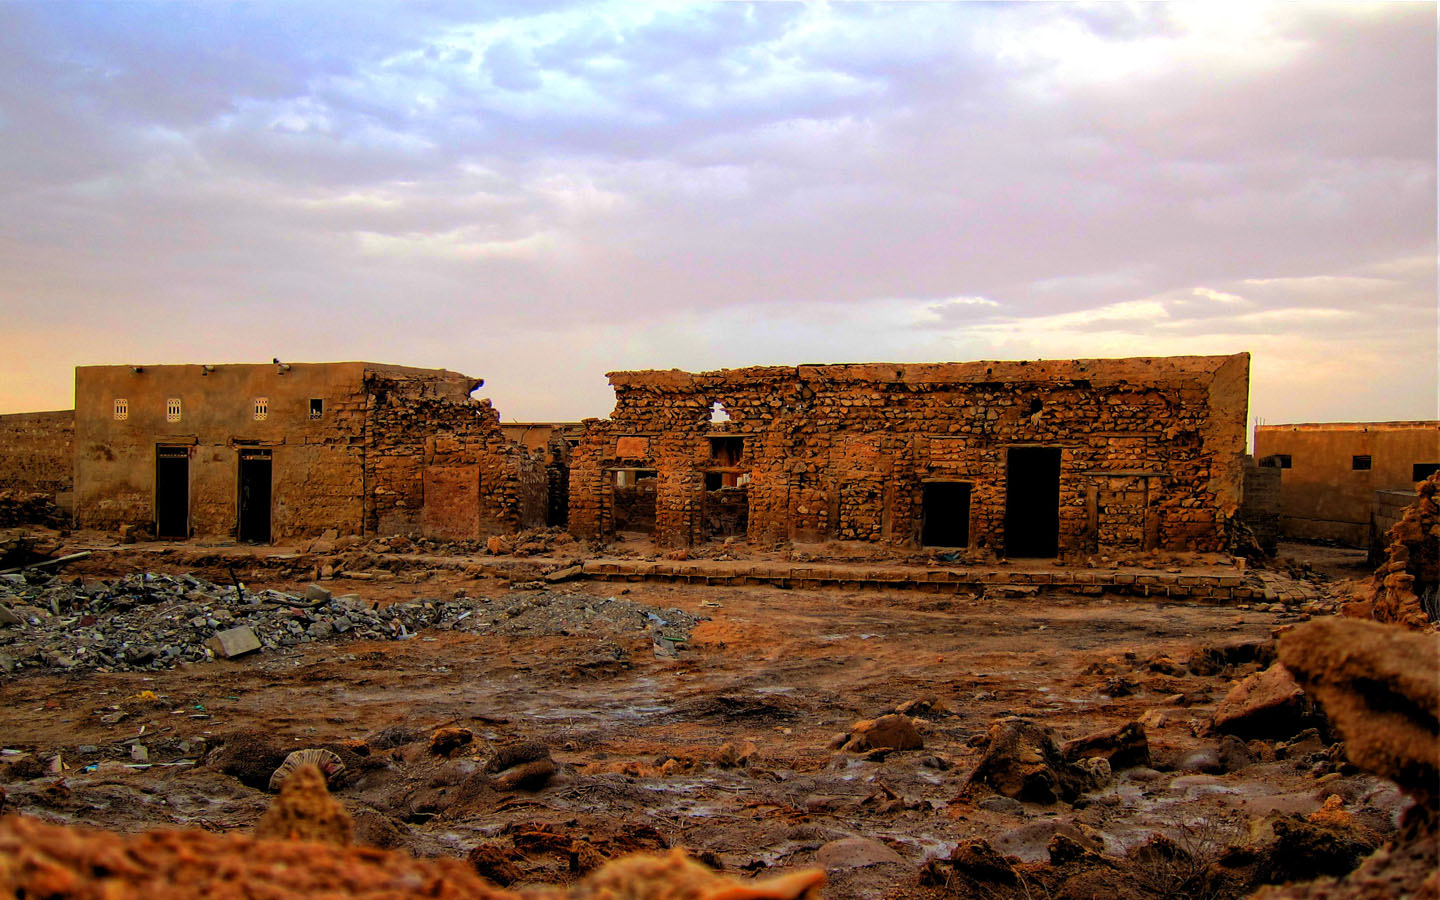 The ruins of Jazairat Al Hamra, Ras Al Khaimah